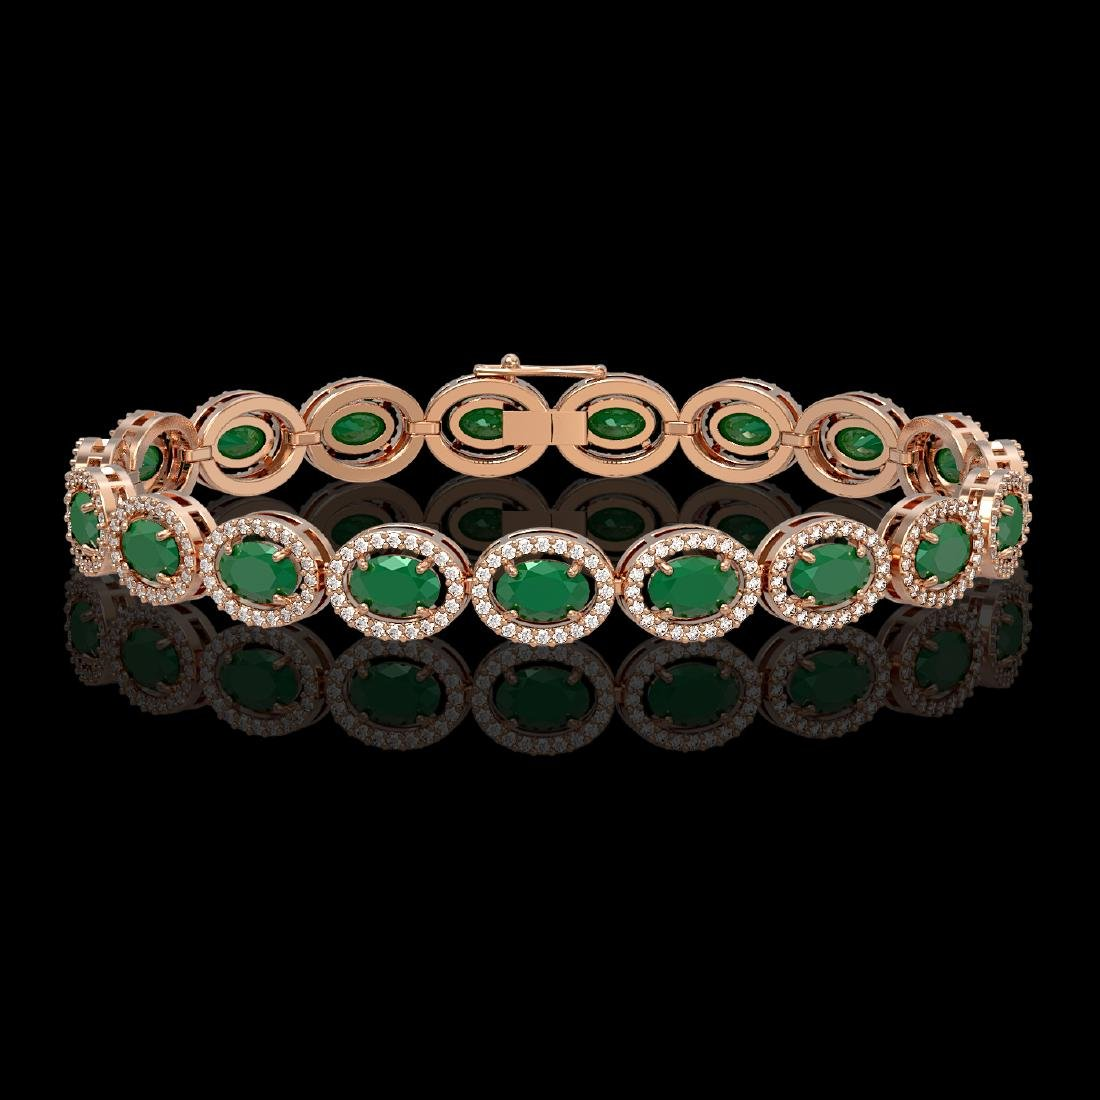 15.2 CTW Emerald & Diamond Halo Bracelet 10K Rose Gold